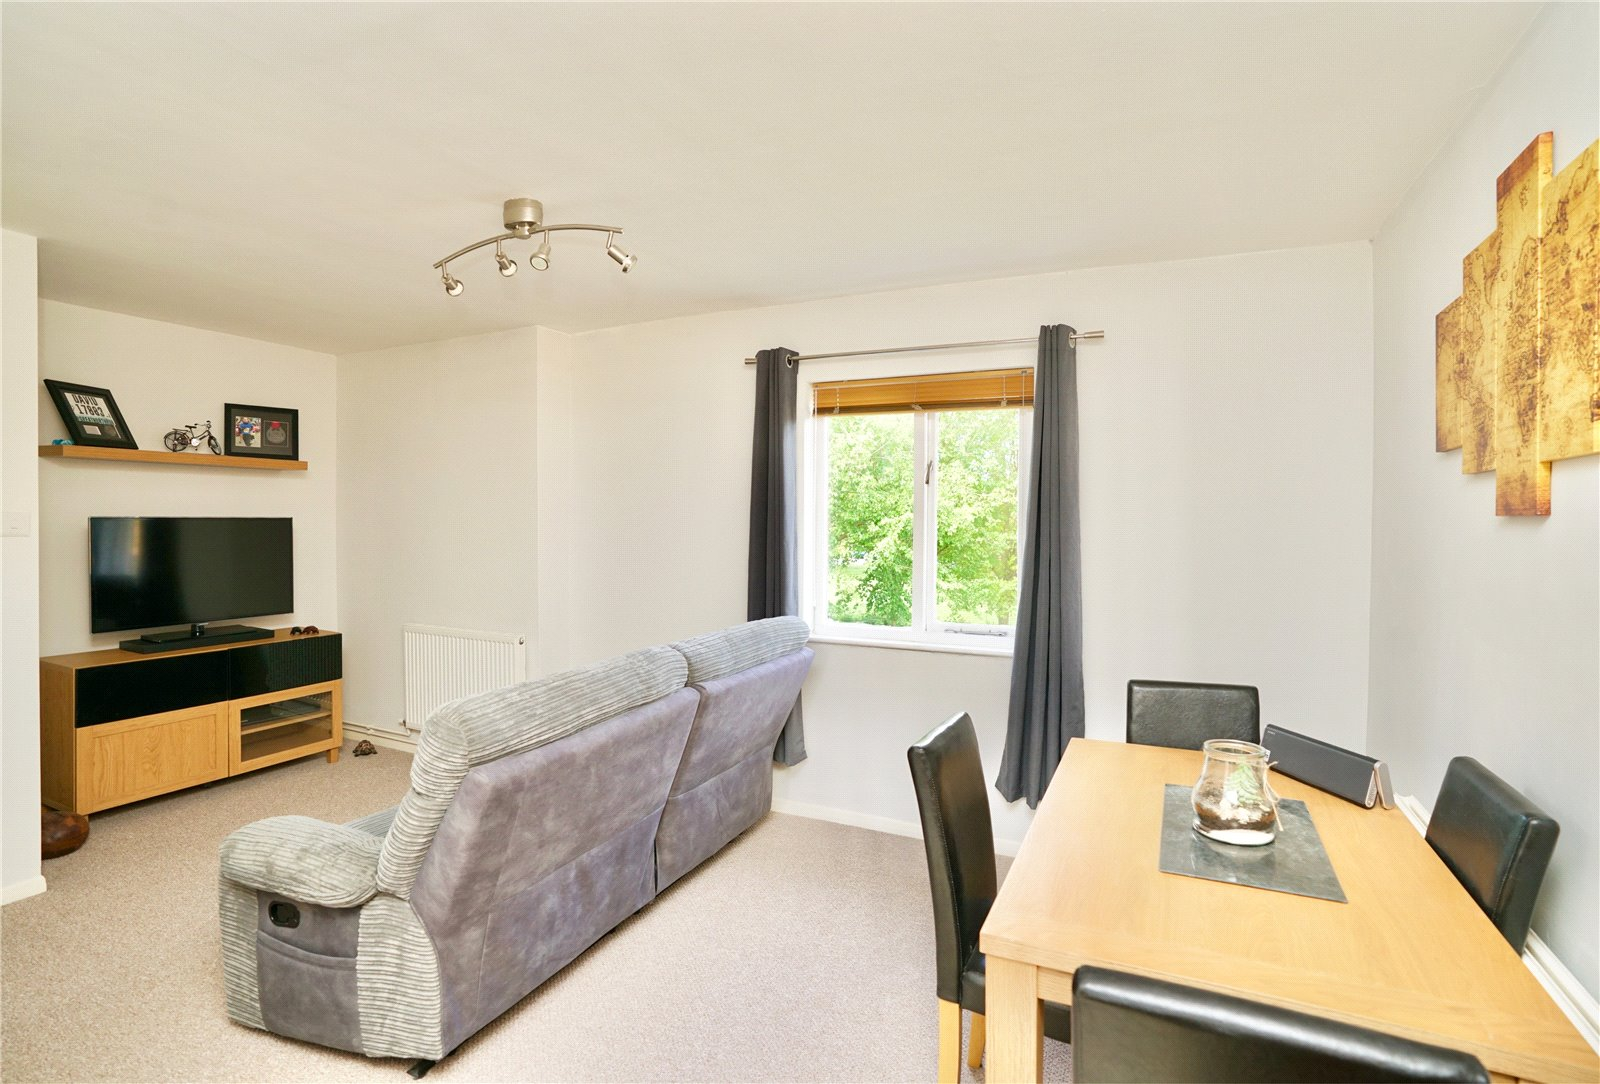 1 bed apartment for sale in St. Ives, PE27 5HA, PE27